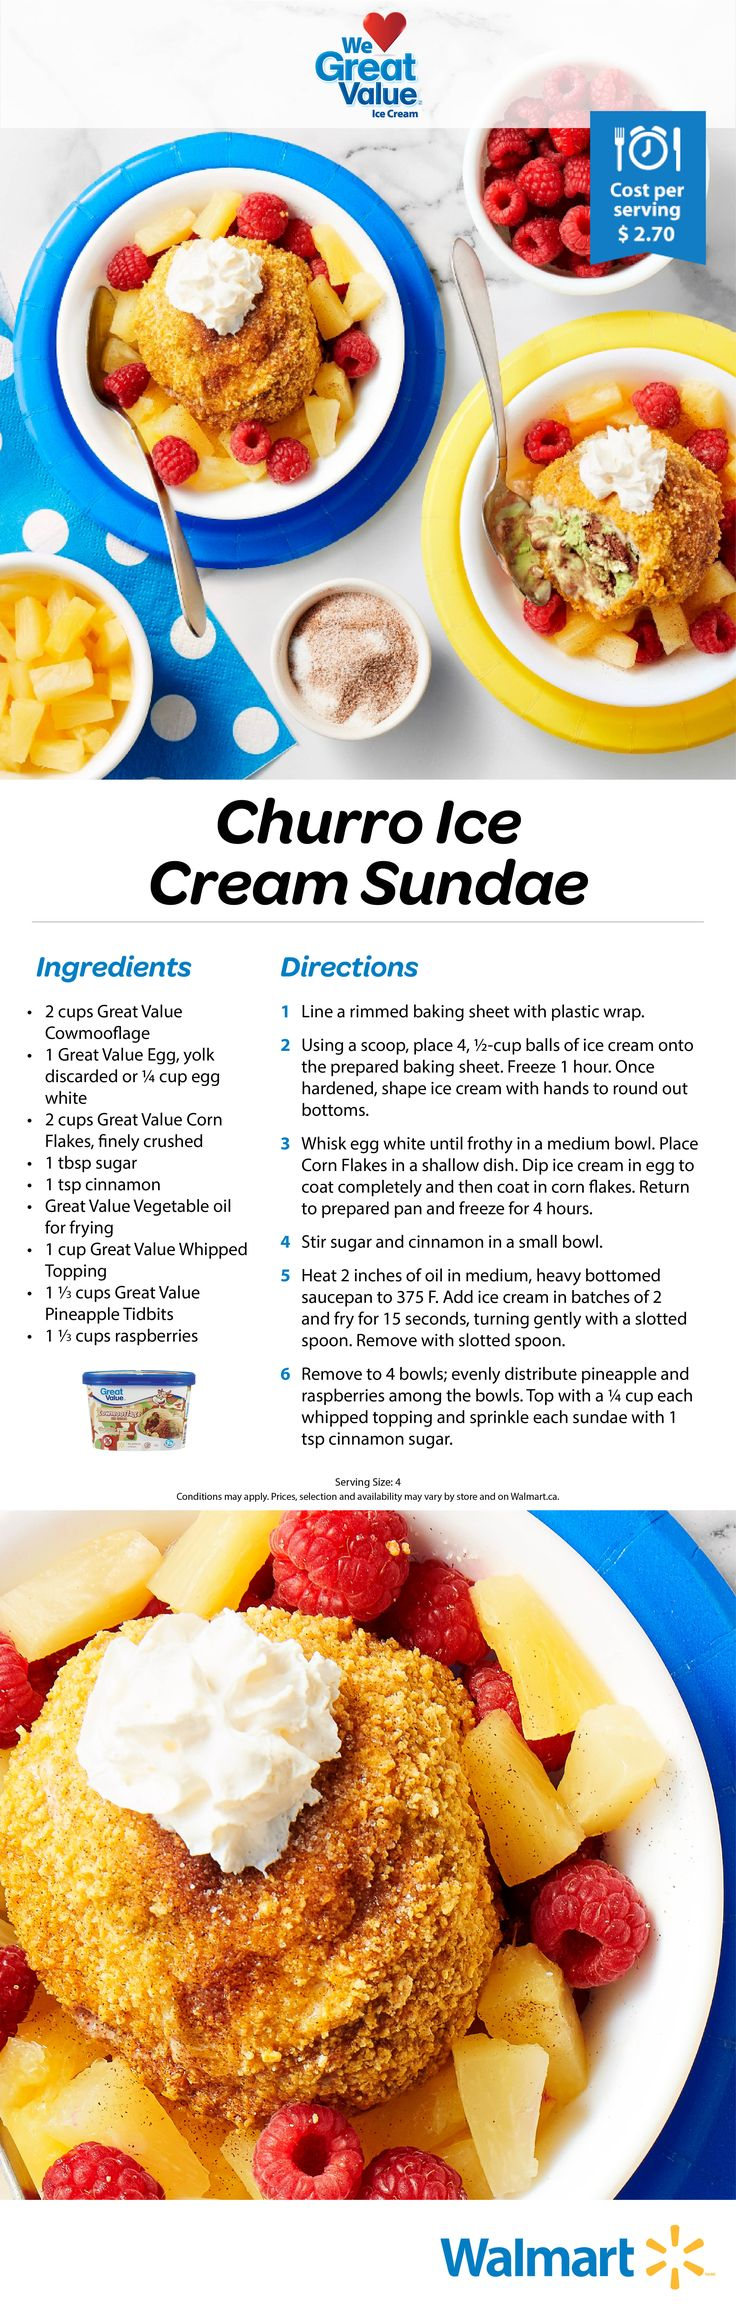 Why can't we adults enjoy ice cream sundaes also? This is a delectable treat full of big and bold flavours. We think you will love it! The recipe starts with our Great Value products. #icecreamsundaes #sundaerecipes #churro #icecream #summertime #summerdesserts #icecreamdesserts #desserts